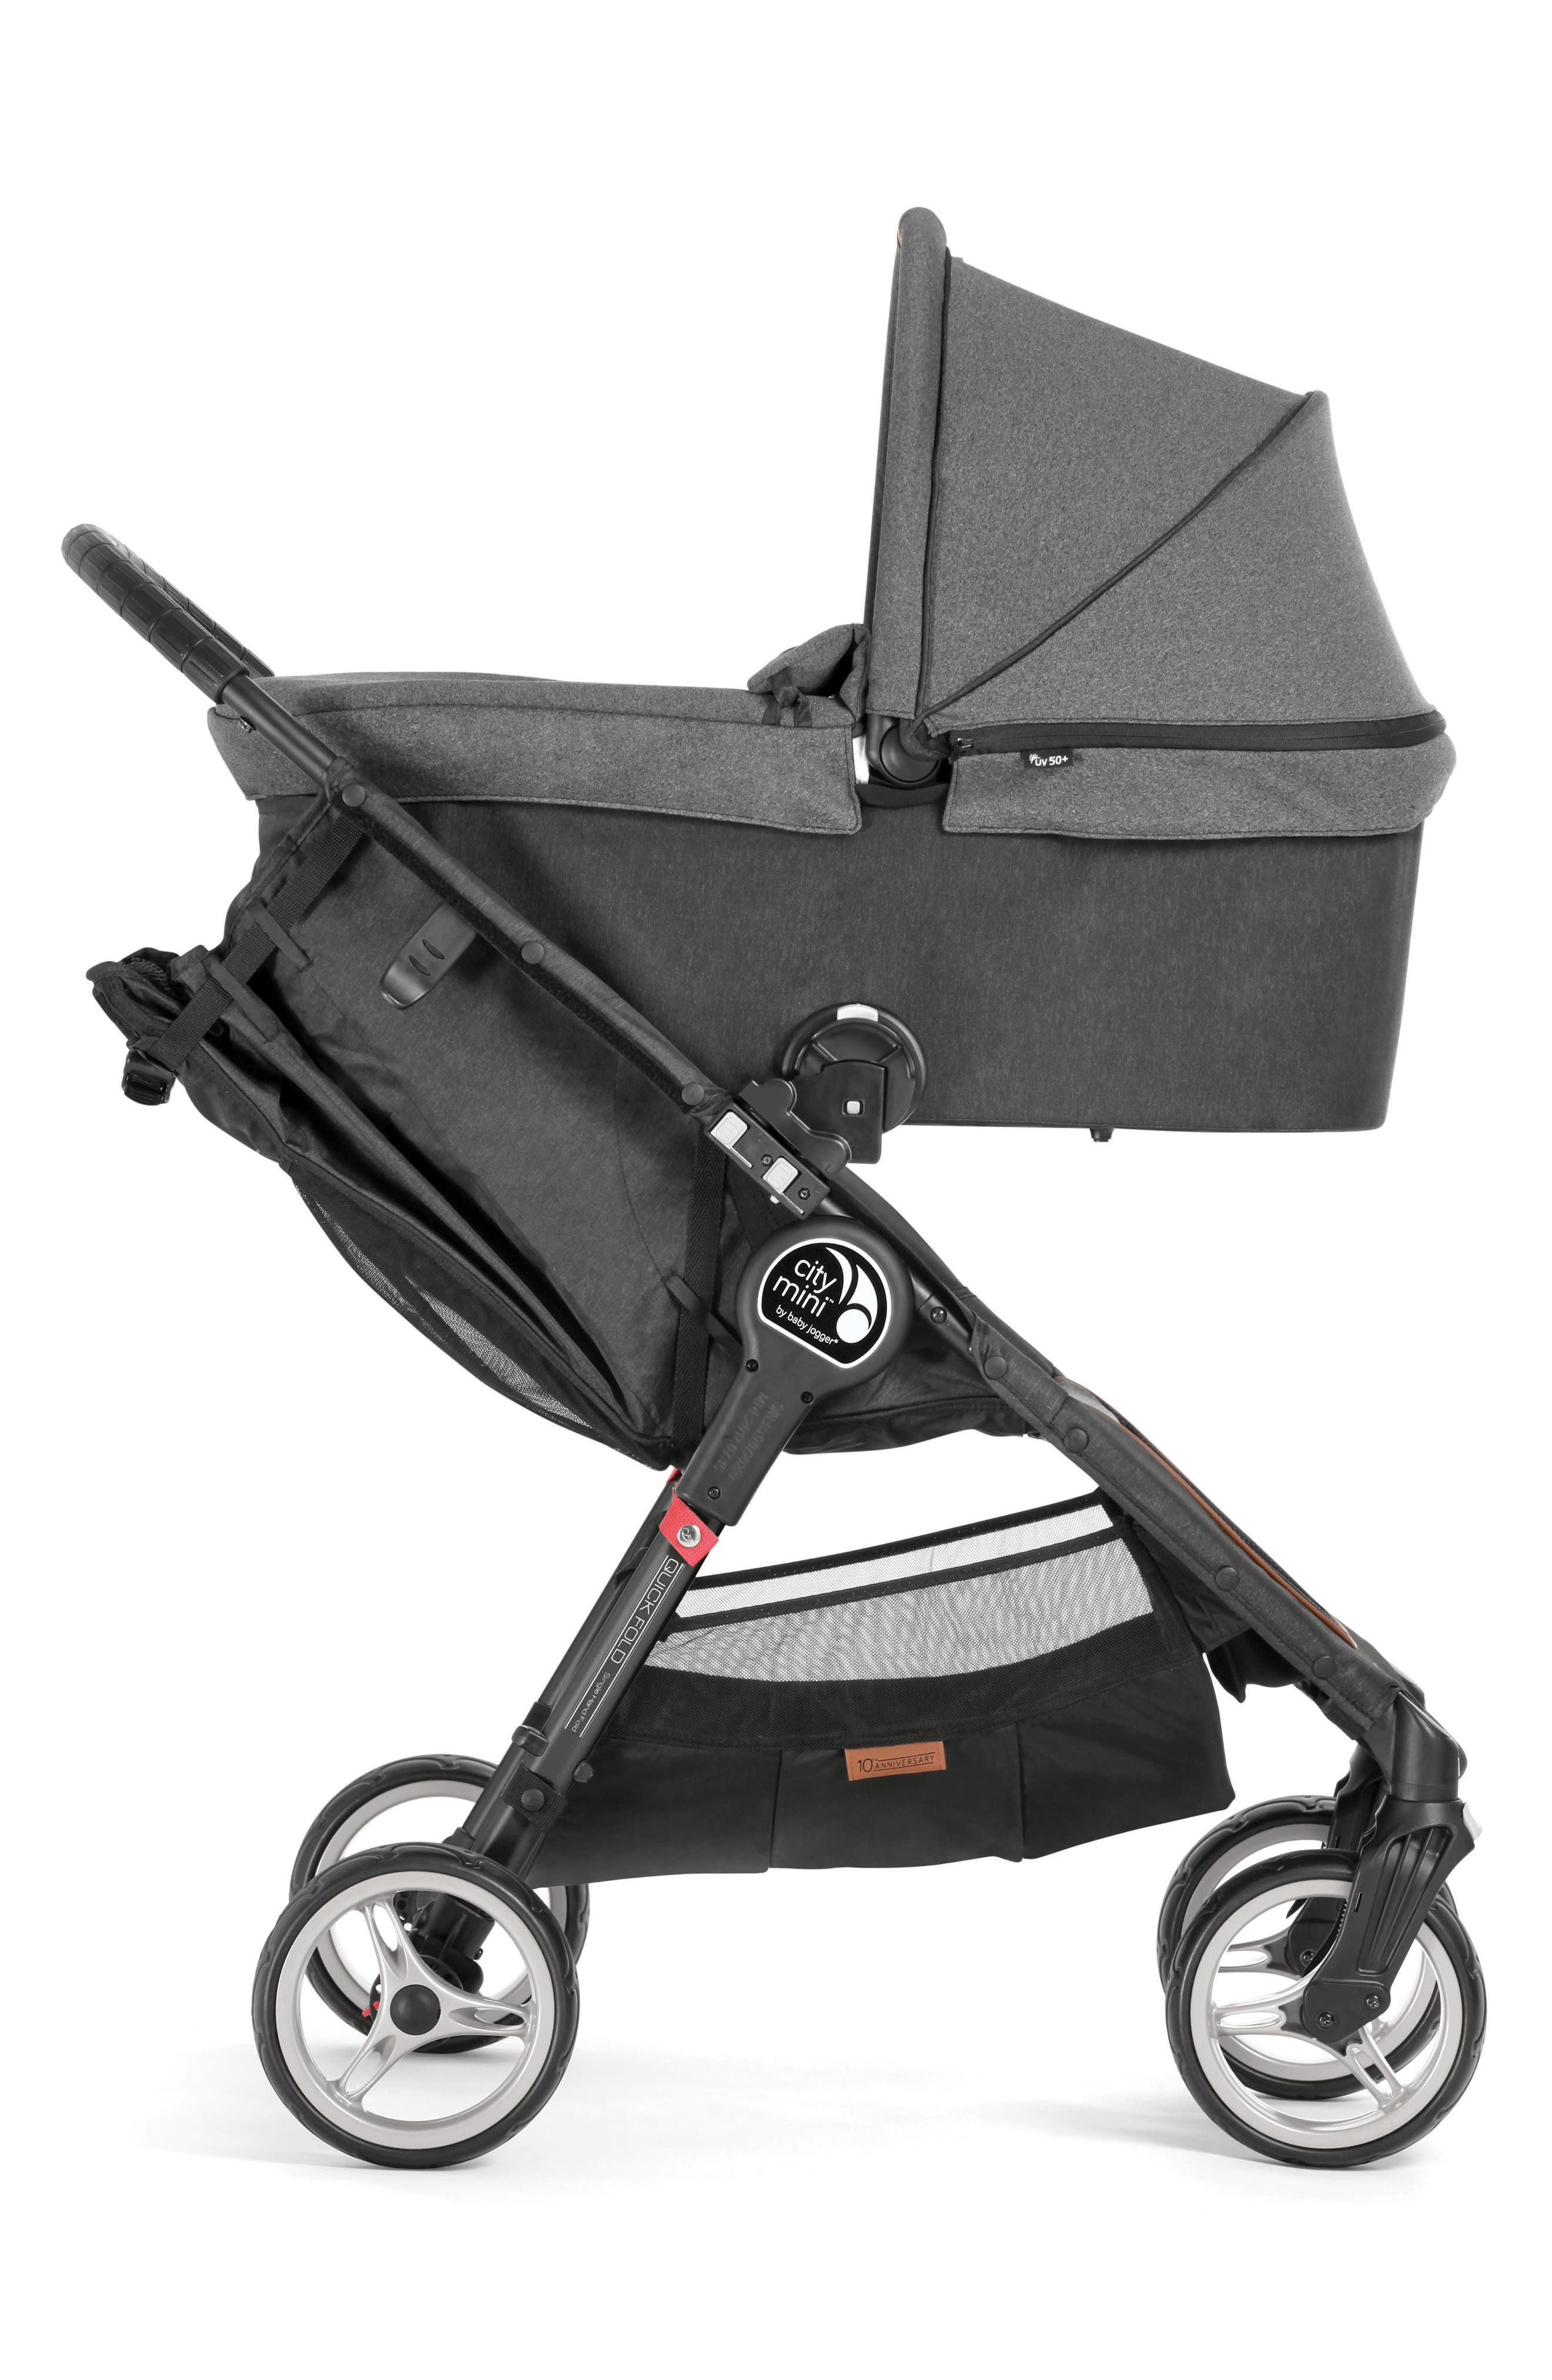 Deluxe Pram Converter Kit for City Mini<sup>®</sup> 2018 Special Edition 10-Year Anniversary All-Terrain Stroller,                             Alternate thumbnail 4, color,                             Grey